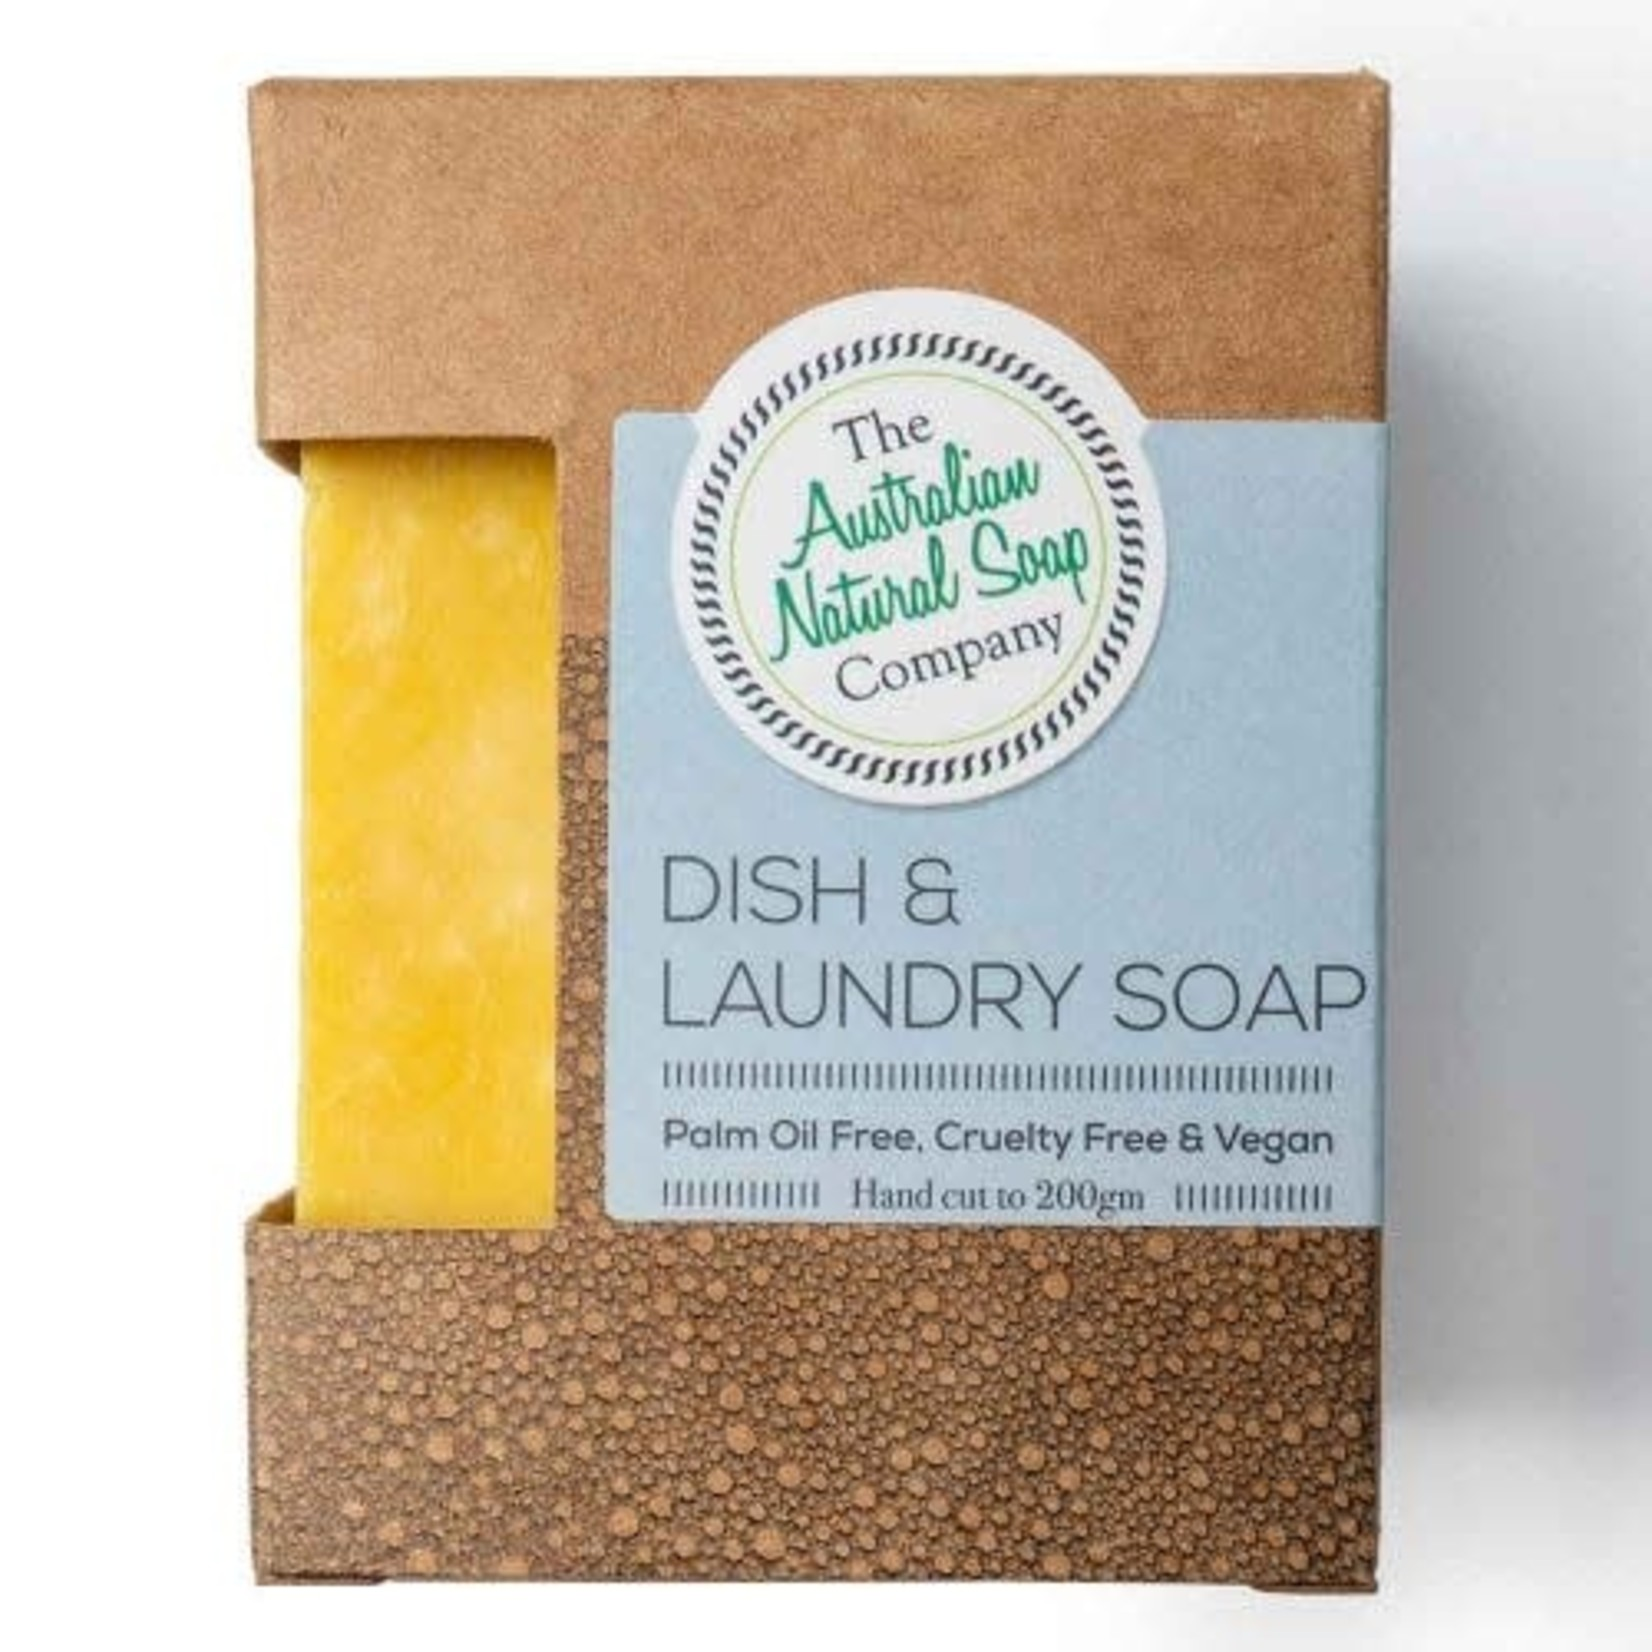 The Australian Natural Soap Company The Australian Natural Soap Company Dish & Laundry Soap Bar